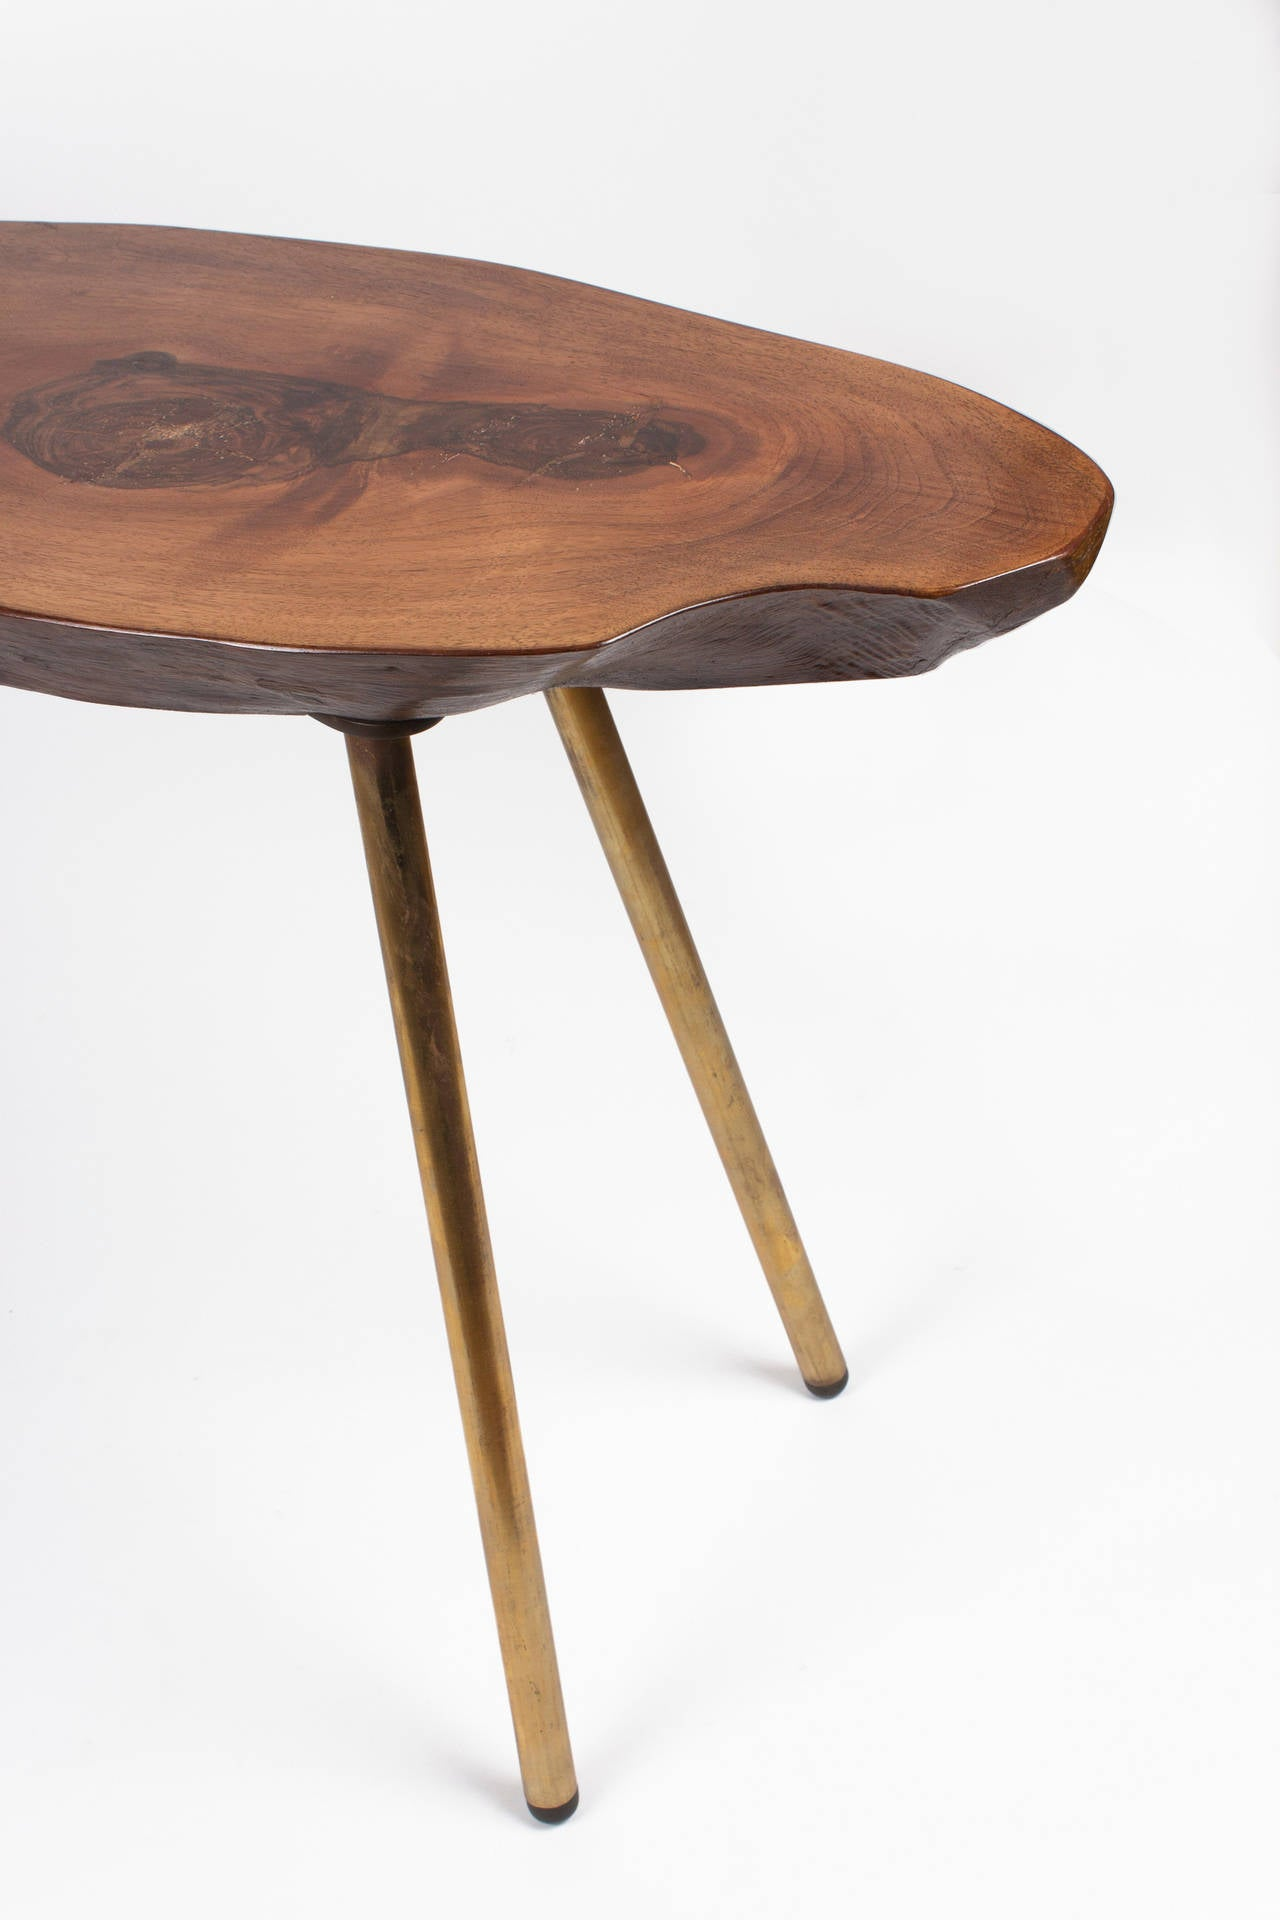 A Goldnut Tree Trunk Table By Carl Aub Ck At 1stdibs